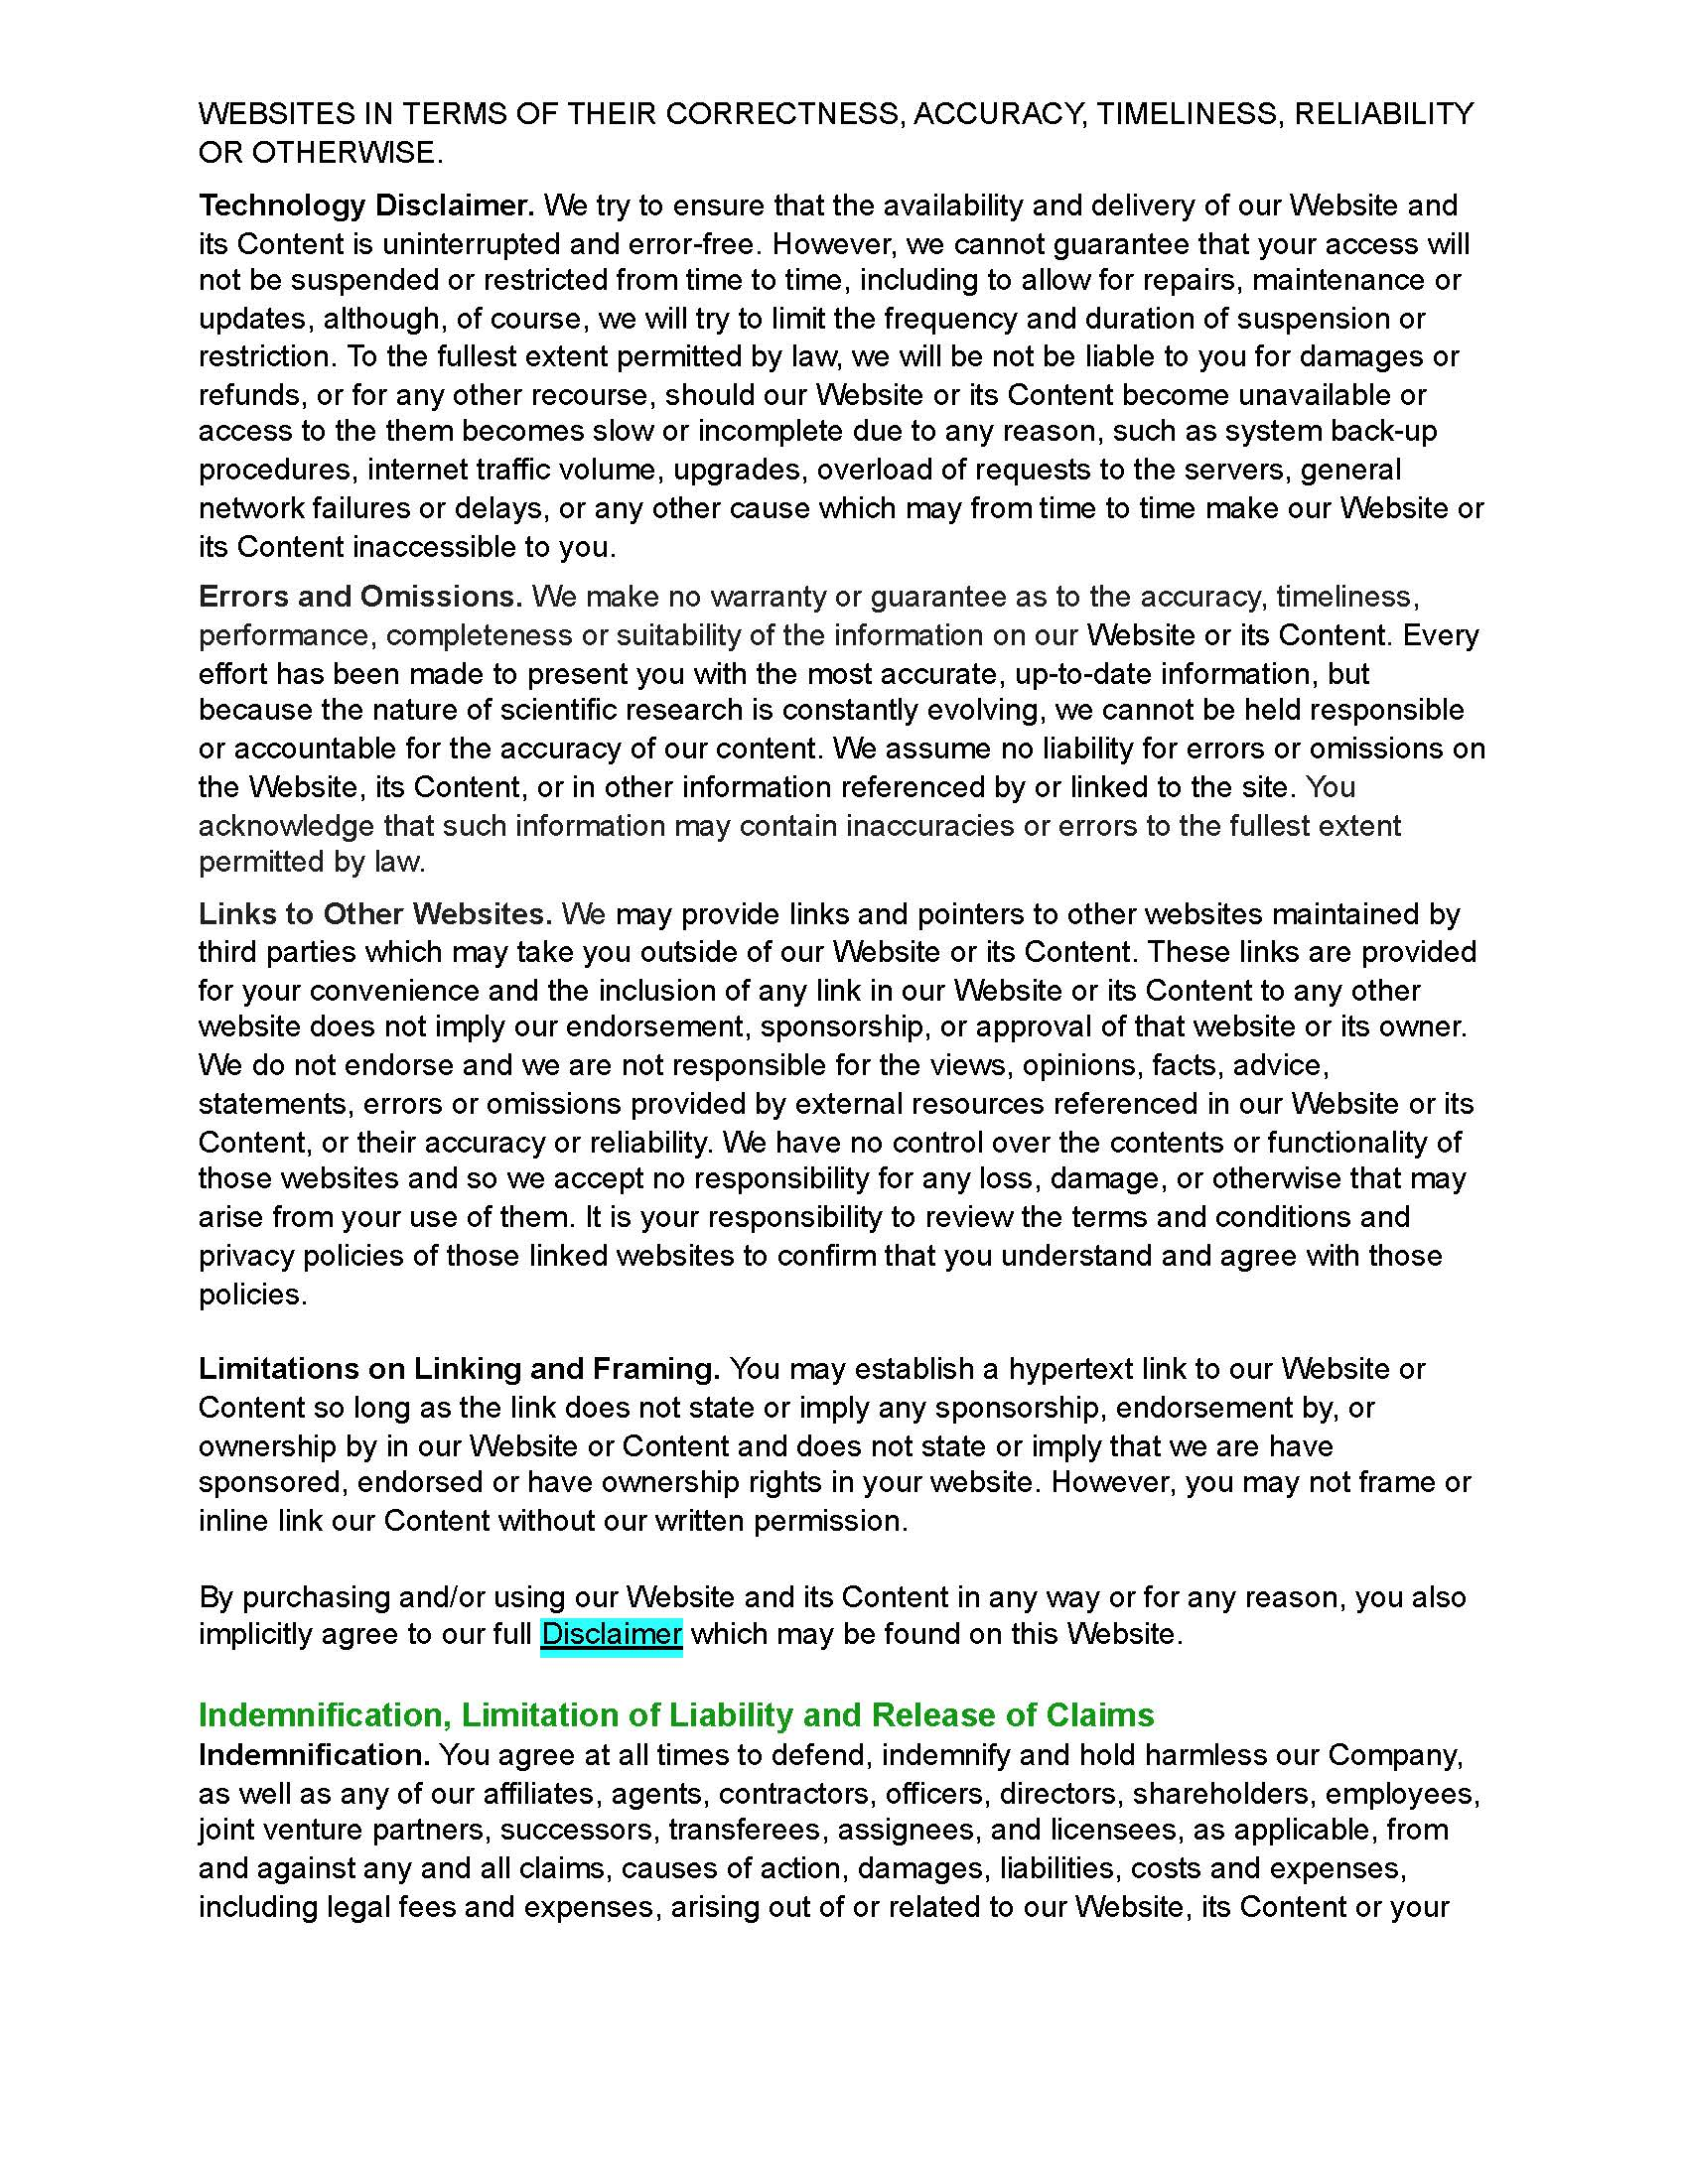 diy-website-terms-and-conditions-gdpr (1)_Page_5.jpg